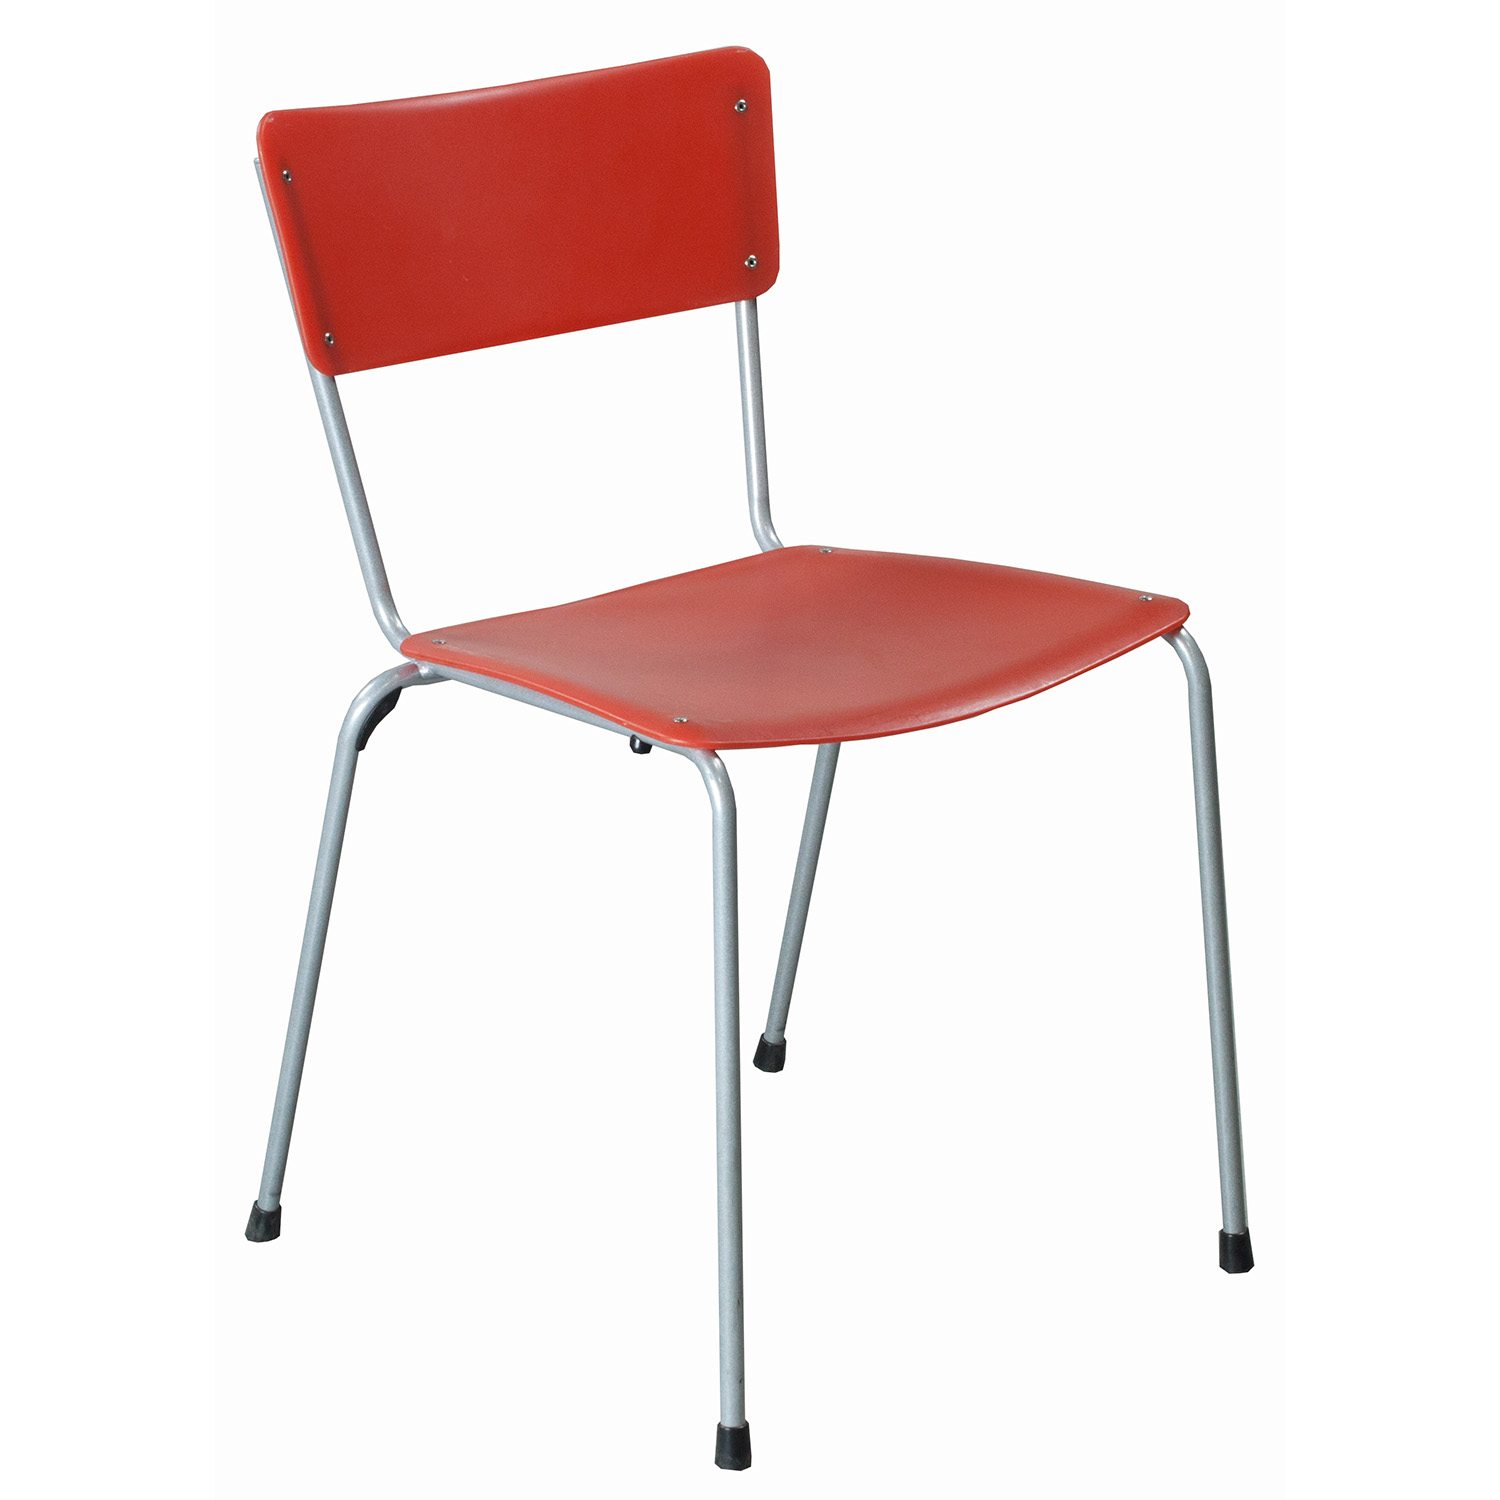 gym in a chair rolling chairs on hardwood floors keilhauer used stack red national office